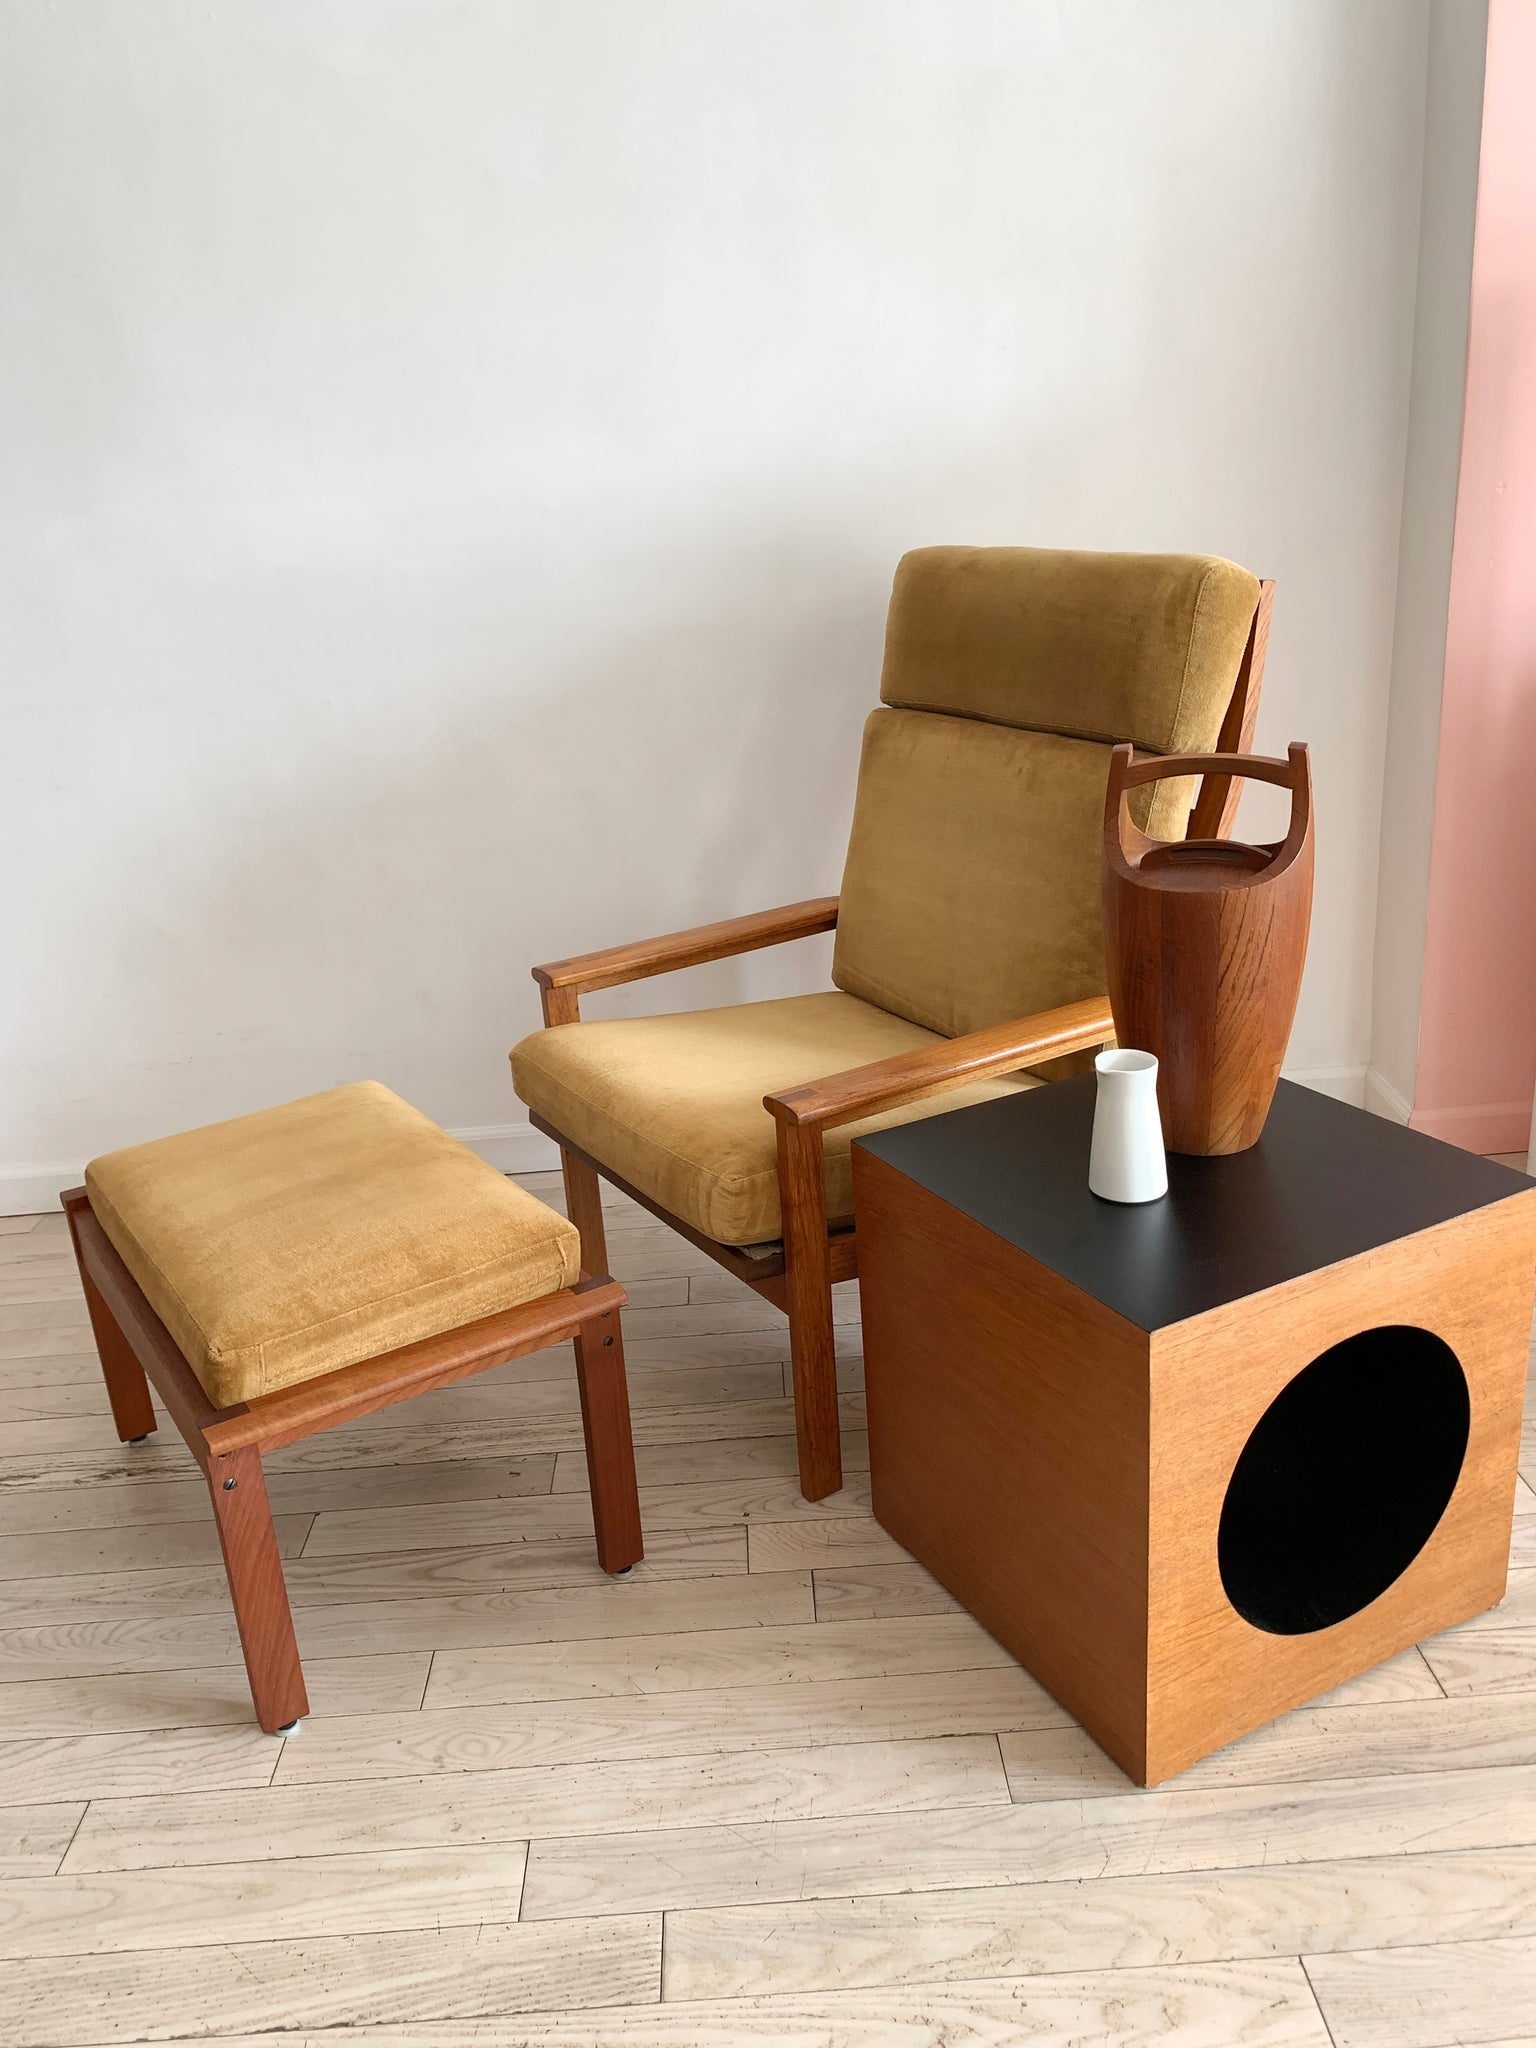 1960s Danish Teak Arm Chair + Ottoman By Illum Wikkelso